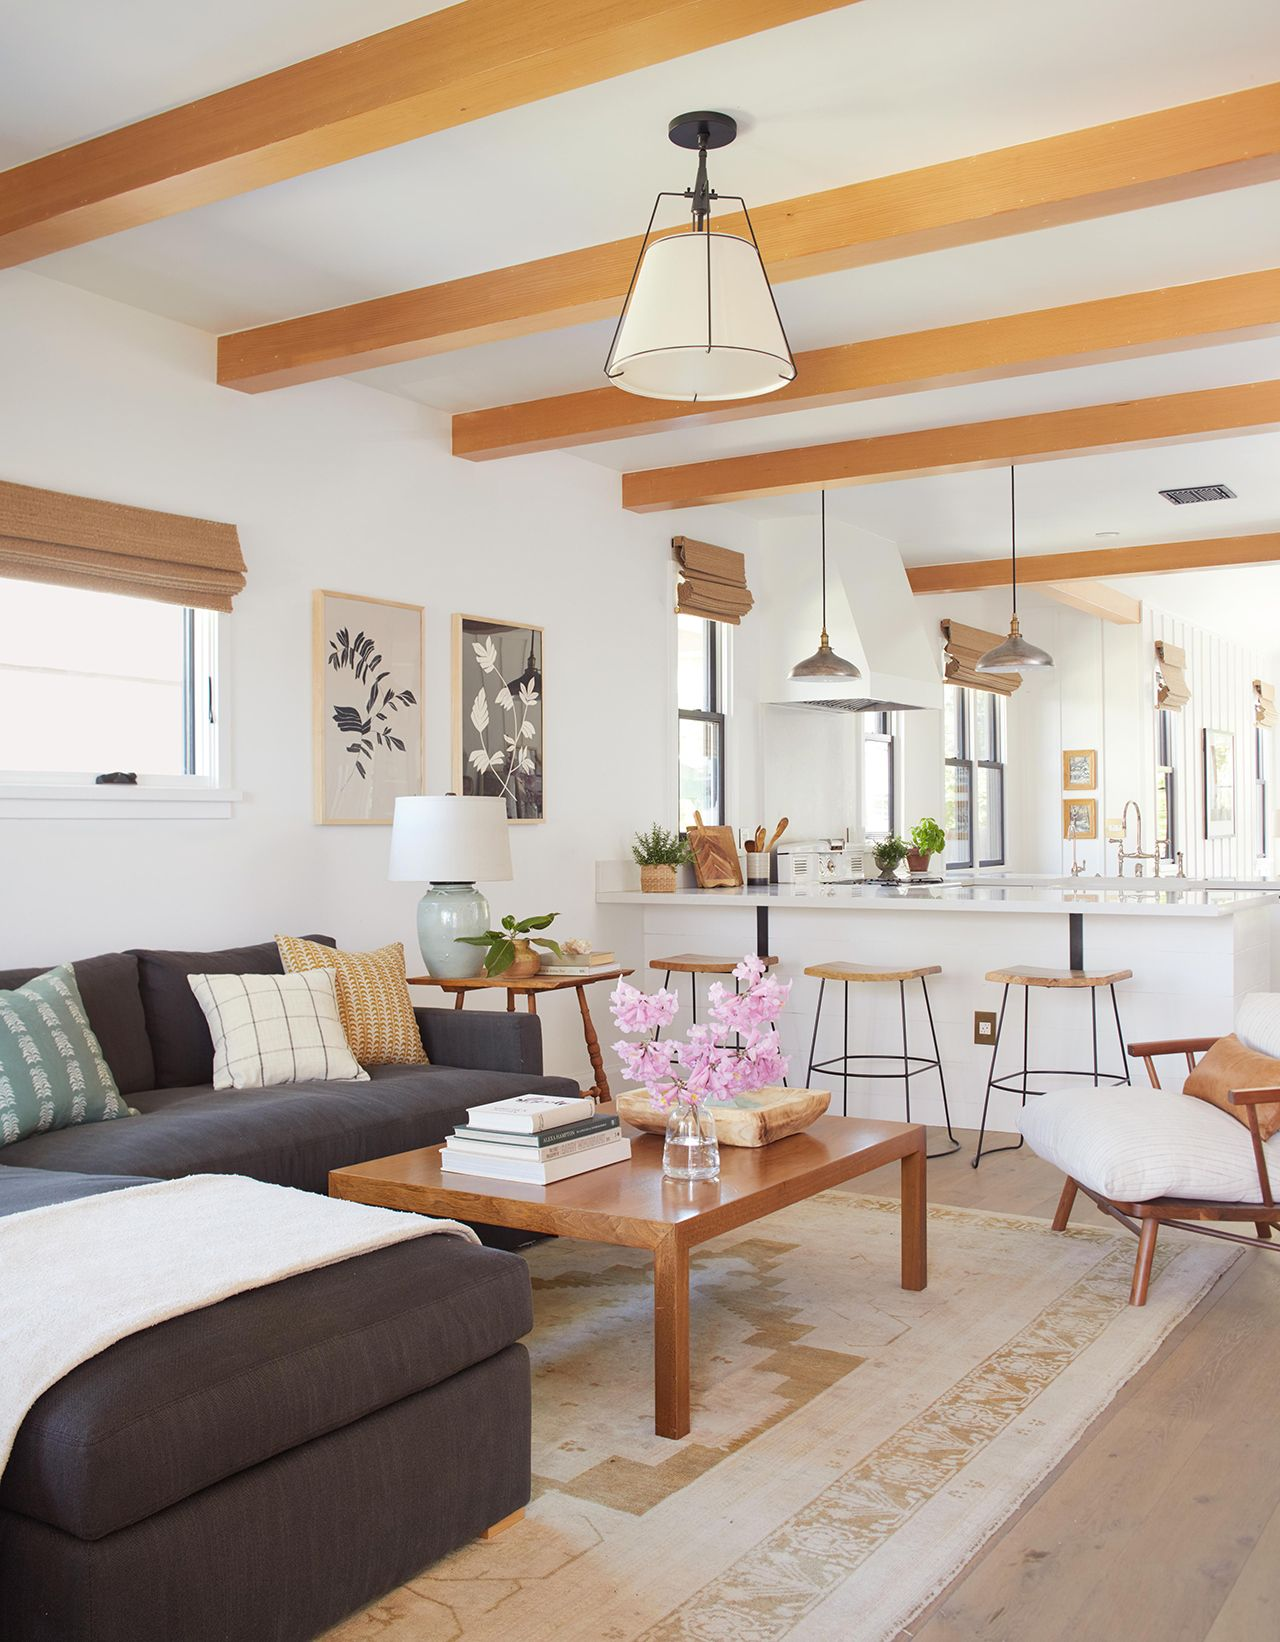 You Have To See This Stunning Bungalow Transformation Bungalow Renovation Home Decor Home